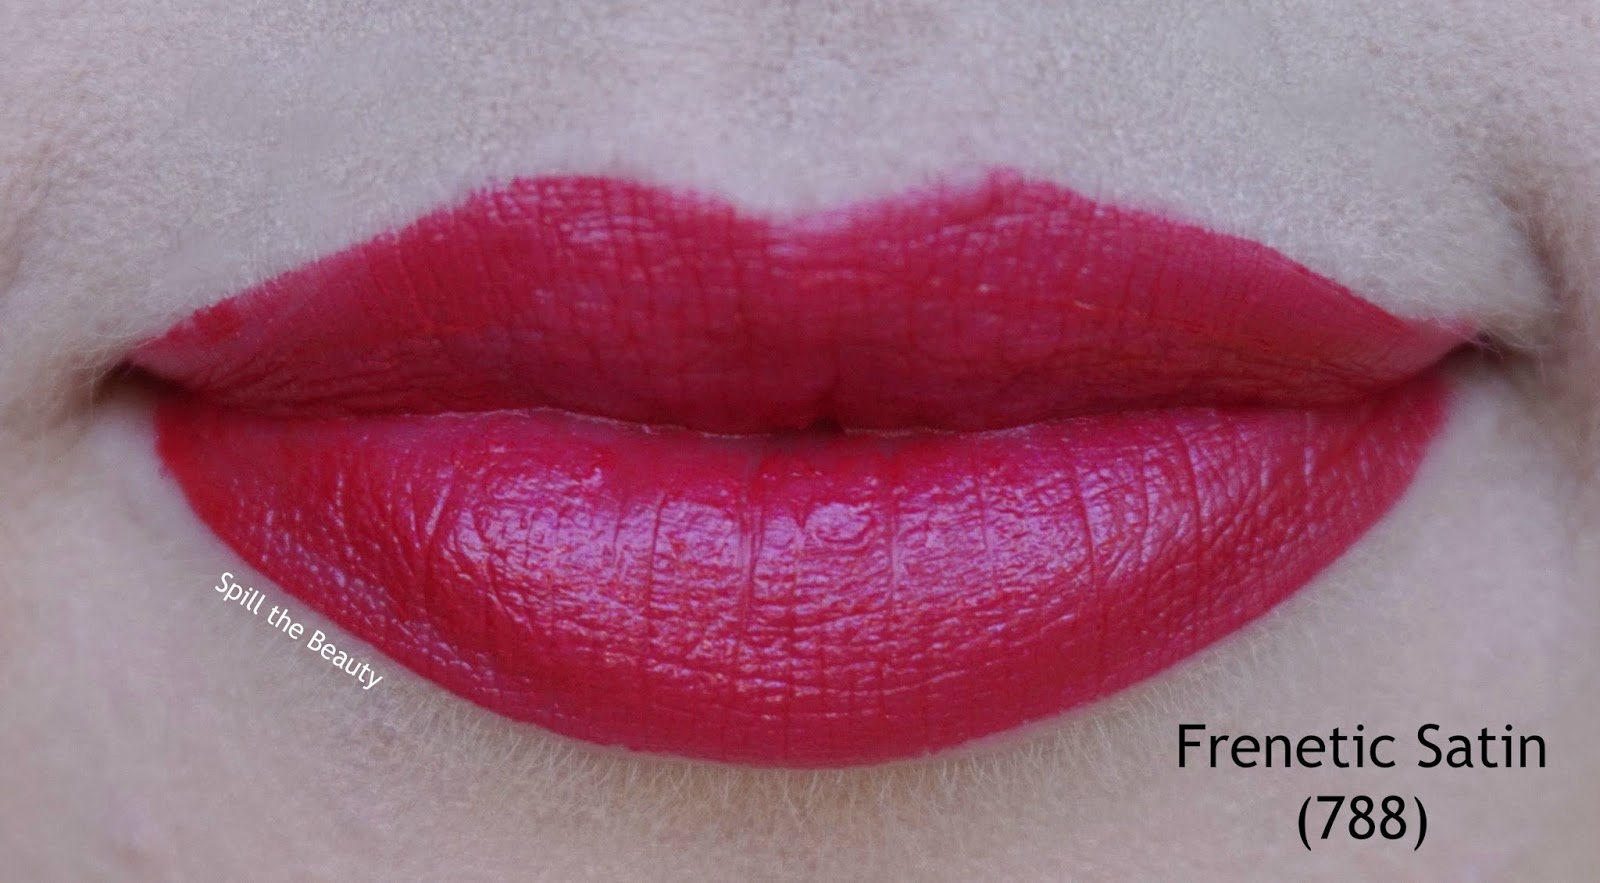 dior rouge dior liquid lipstick frenetic matte poison metal hectic matte shock matte swatches review lips - frenetic satin